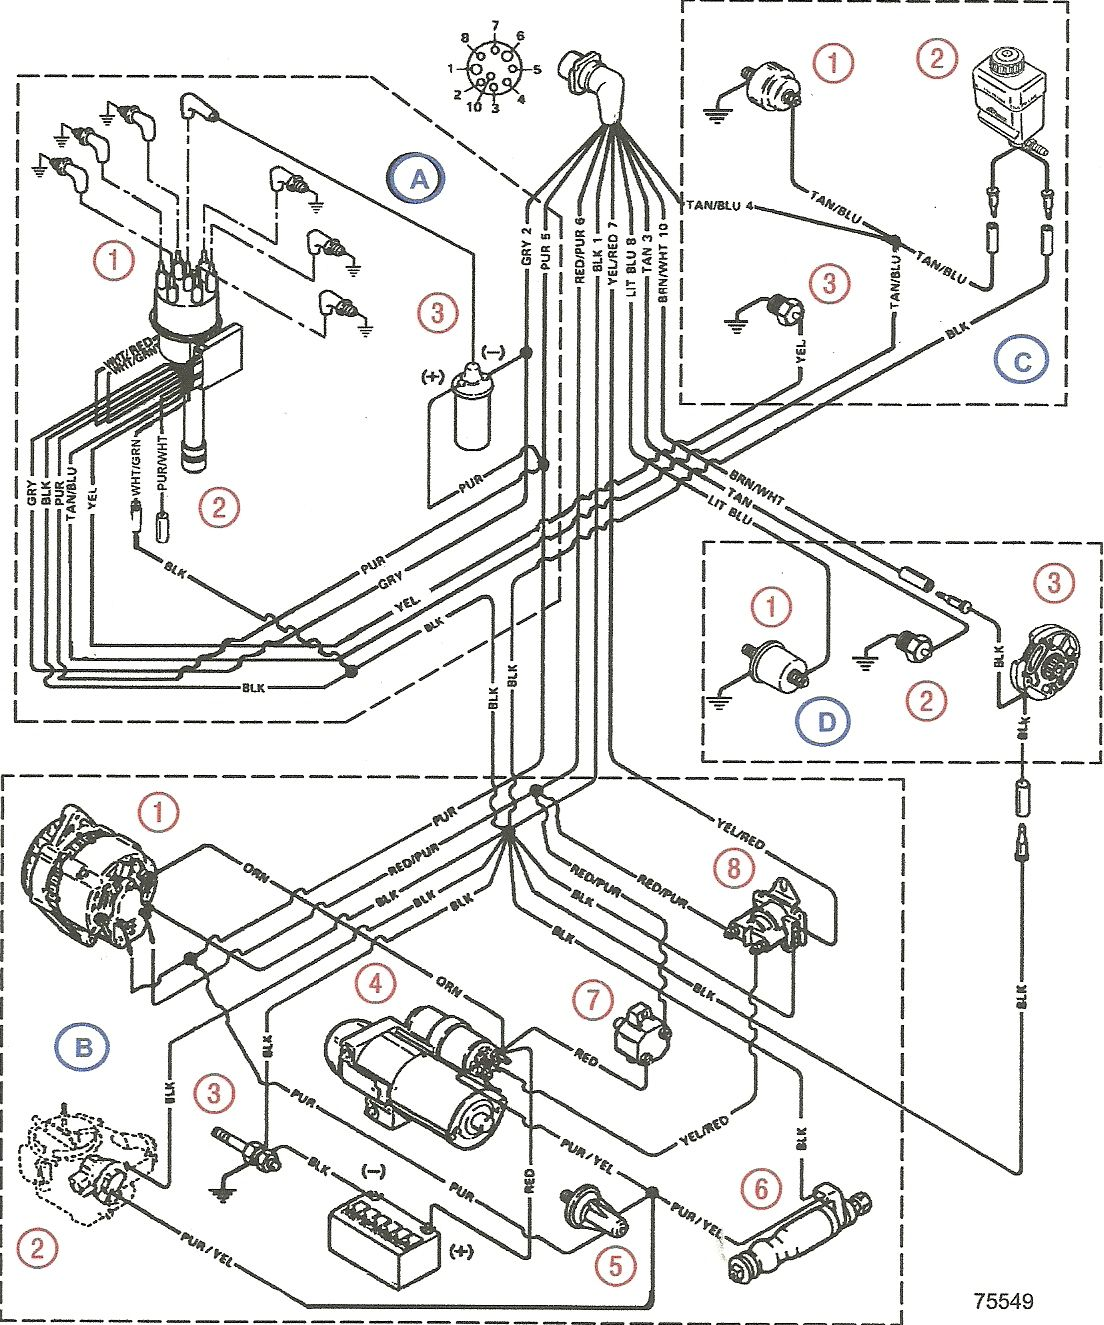 volvo penta 5 7 wiring diagram simple boat wiring diagram \u2022 free  1994 pontiac 5 7l diagram wiring schematic